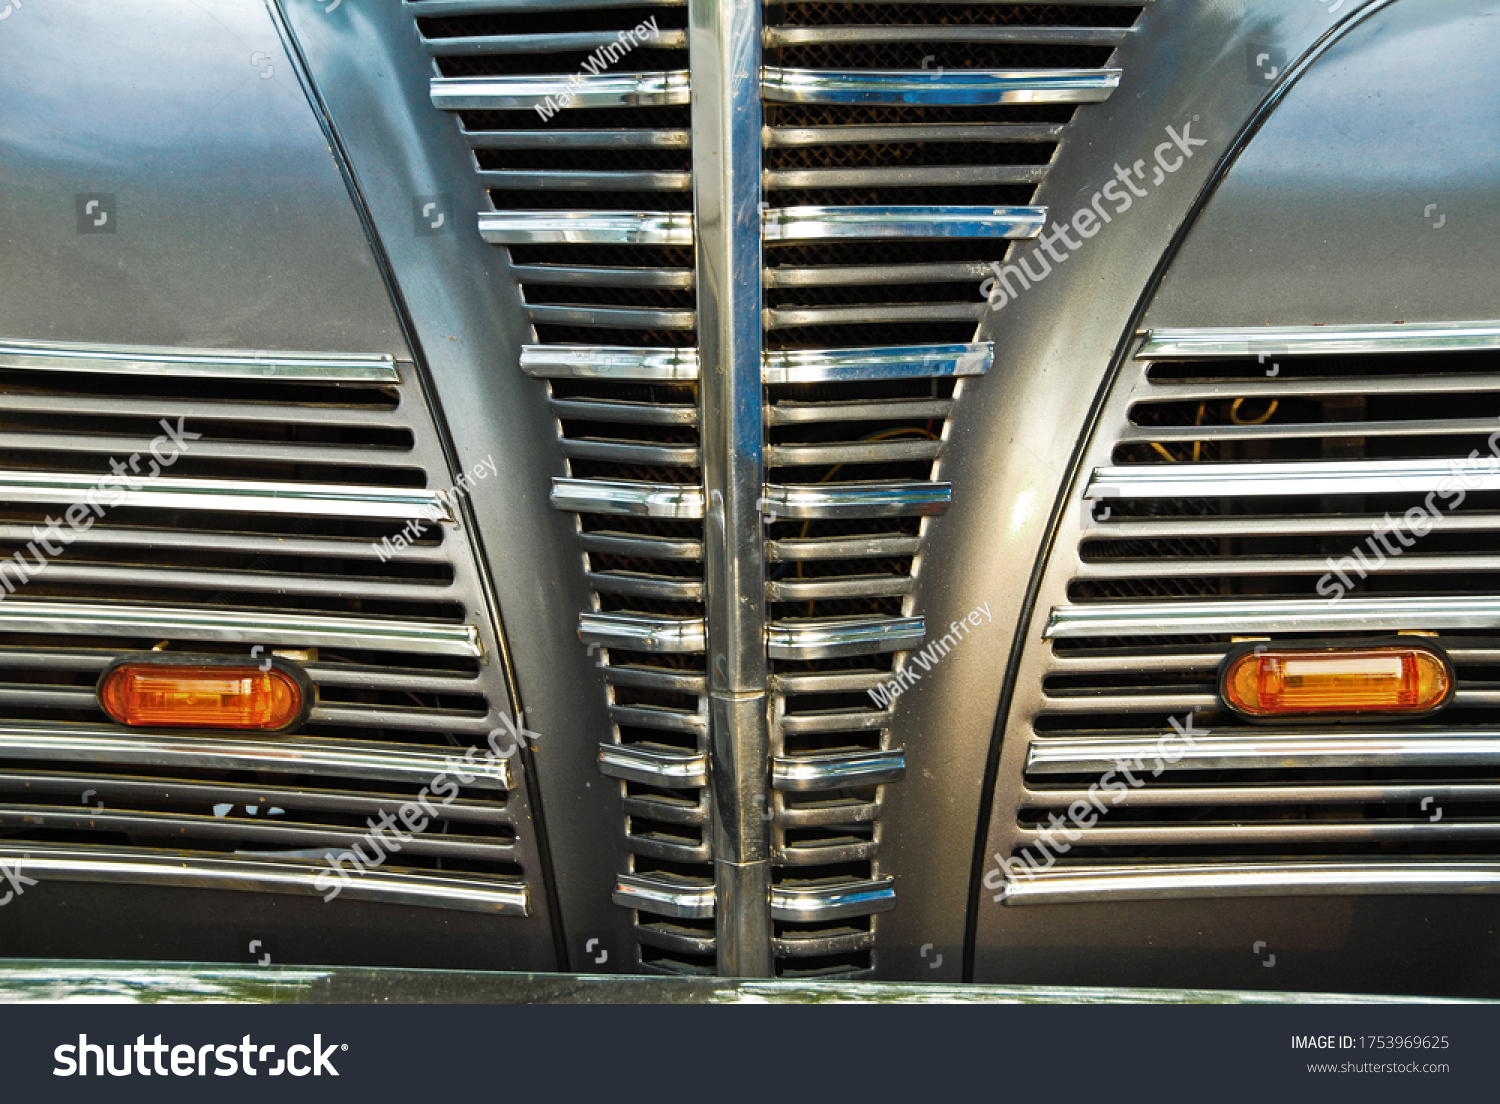 stock-photo-close-up-view-of-an-old-car-